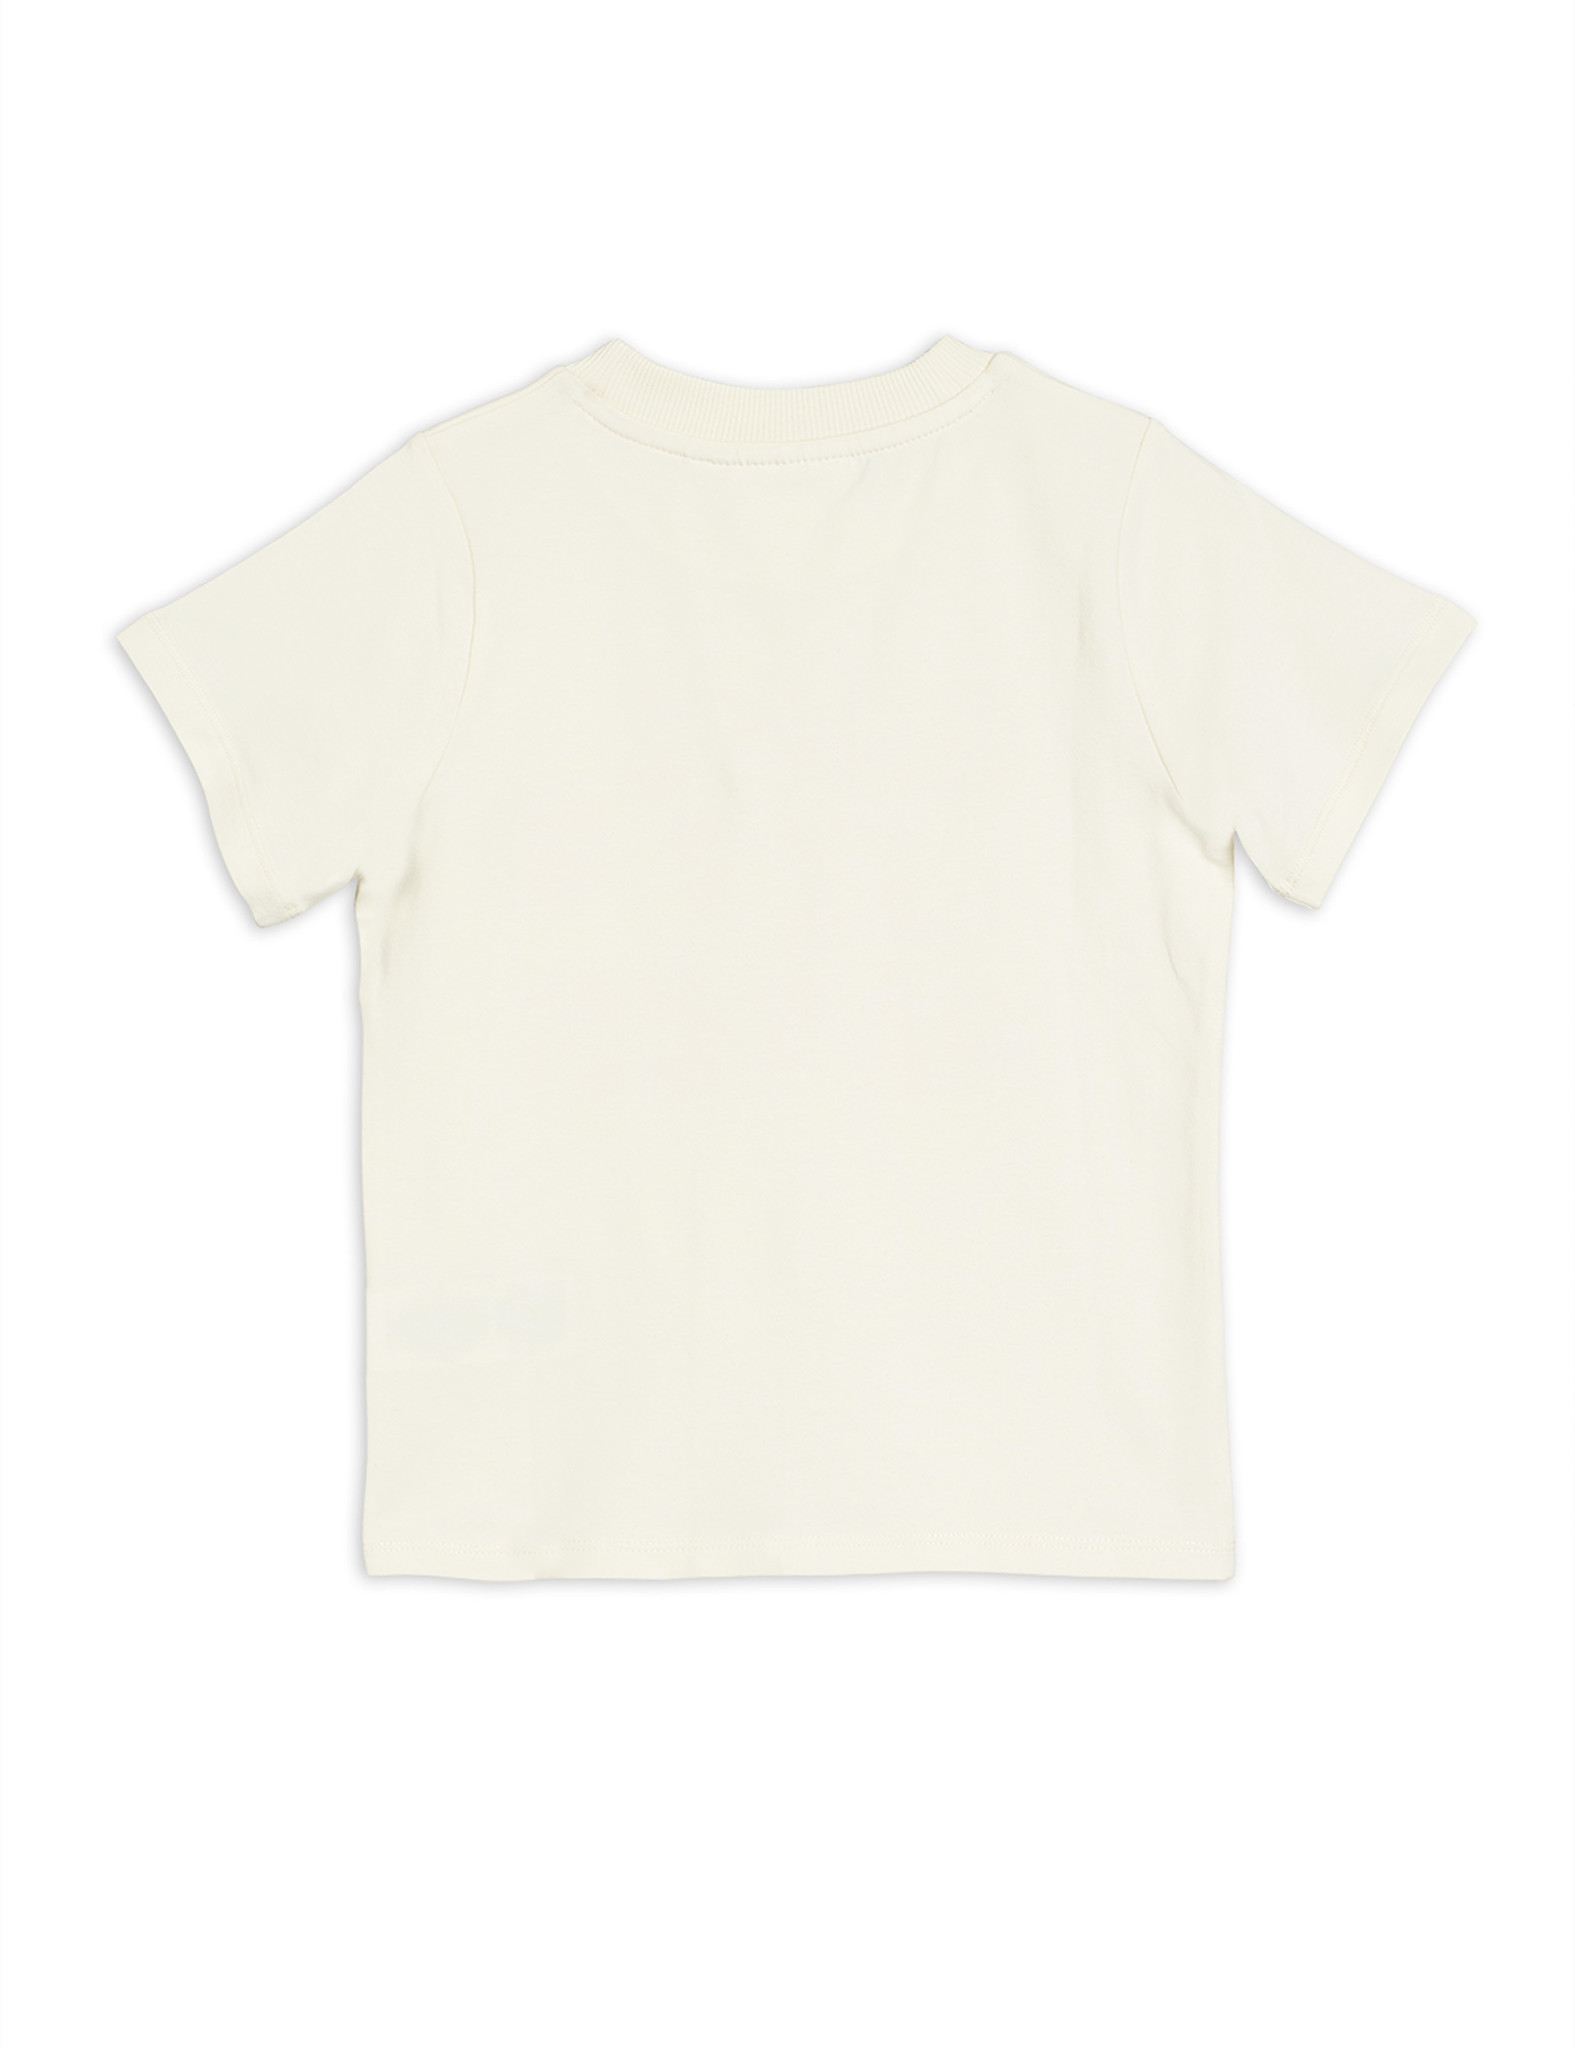 Game sp tee - Blue-2